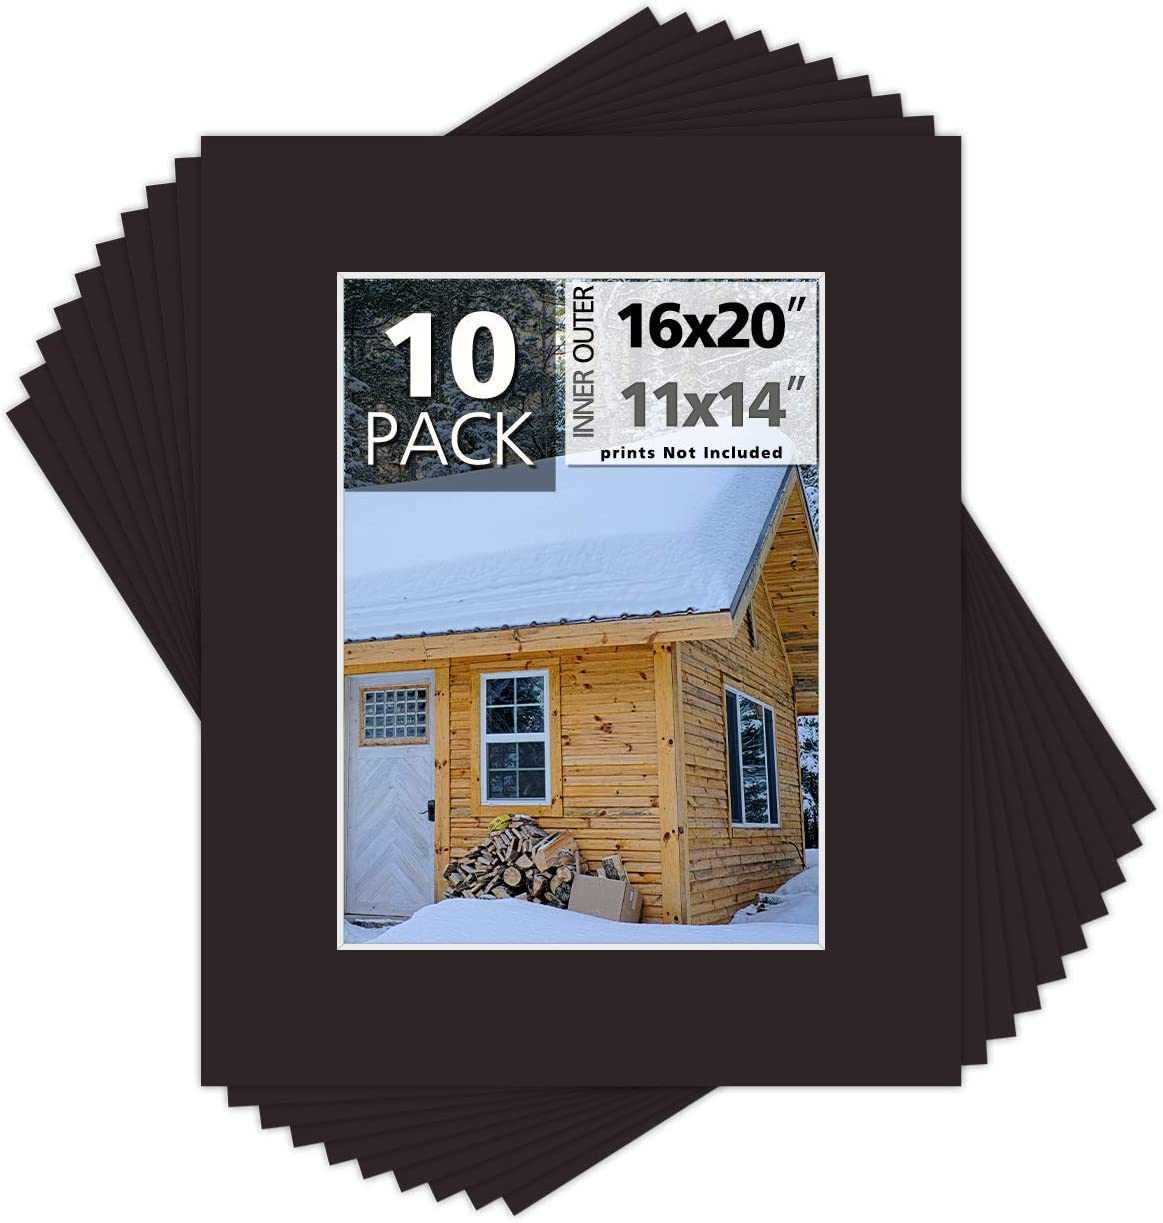 Superlatite Mat Board Center Pack of 10 Picture Mats Photo 16x20 11x14 gift for